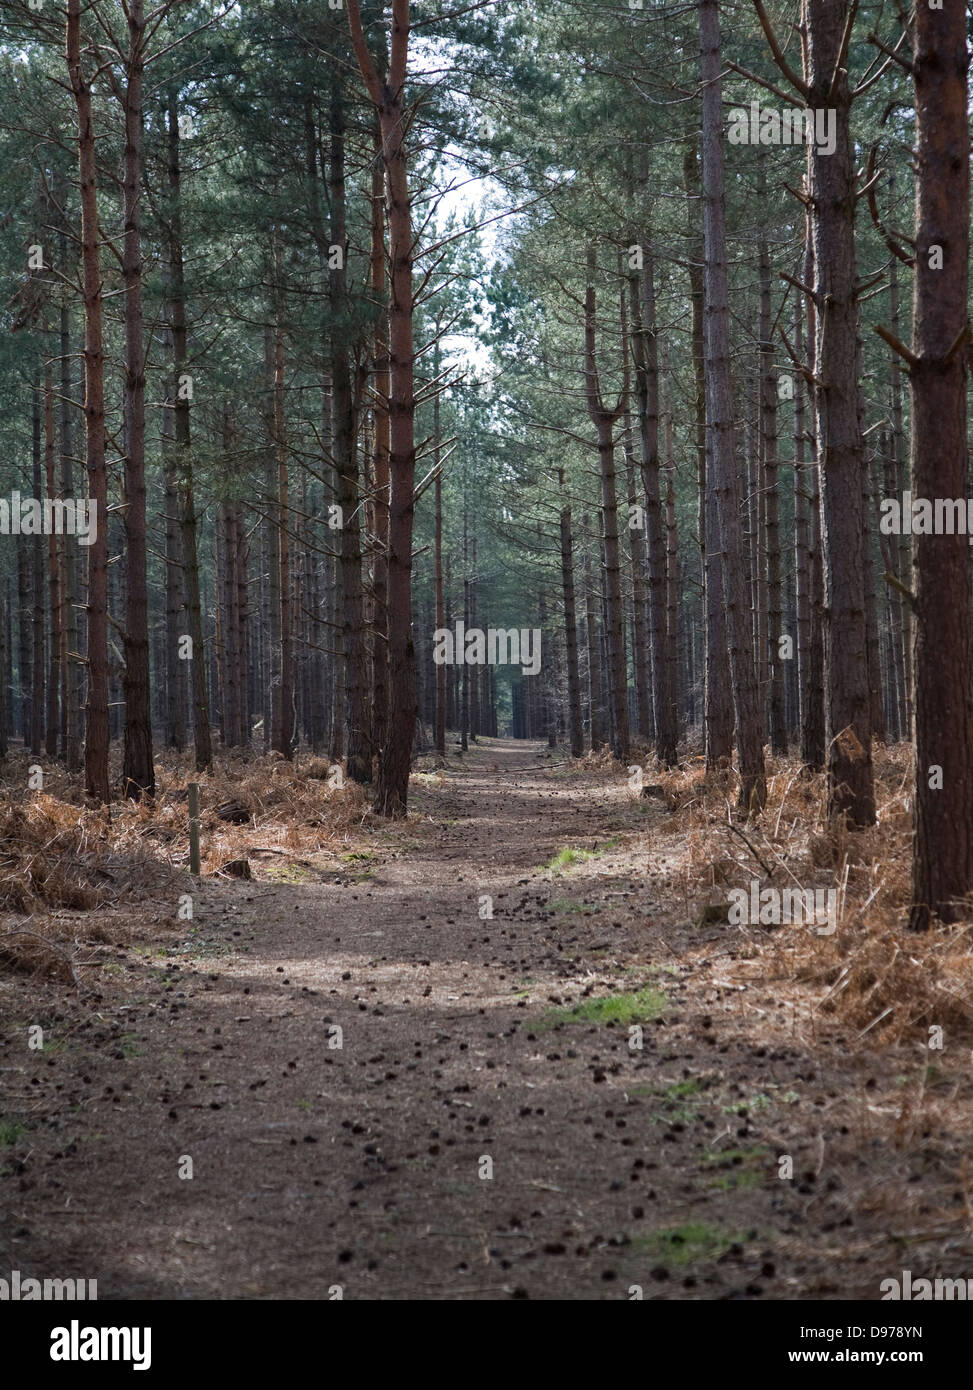 Track through conifer trees in Rendlesham Forest, Suffolk, England - Stock Image